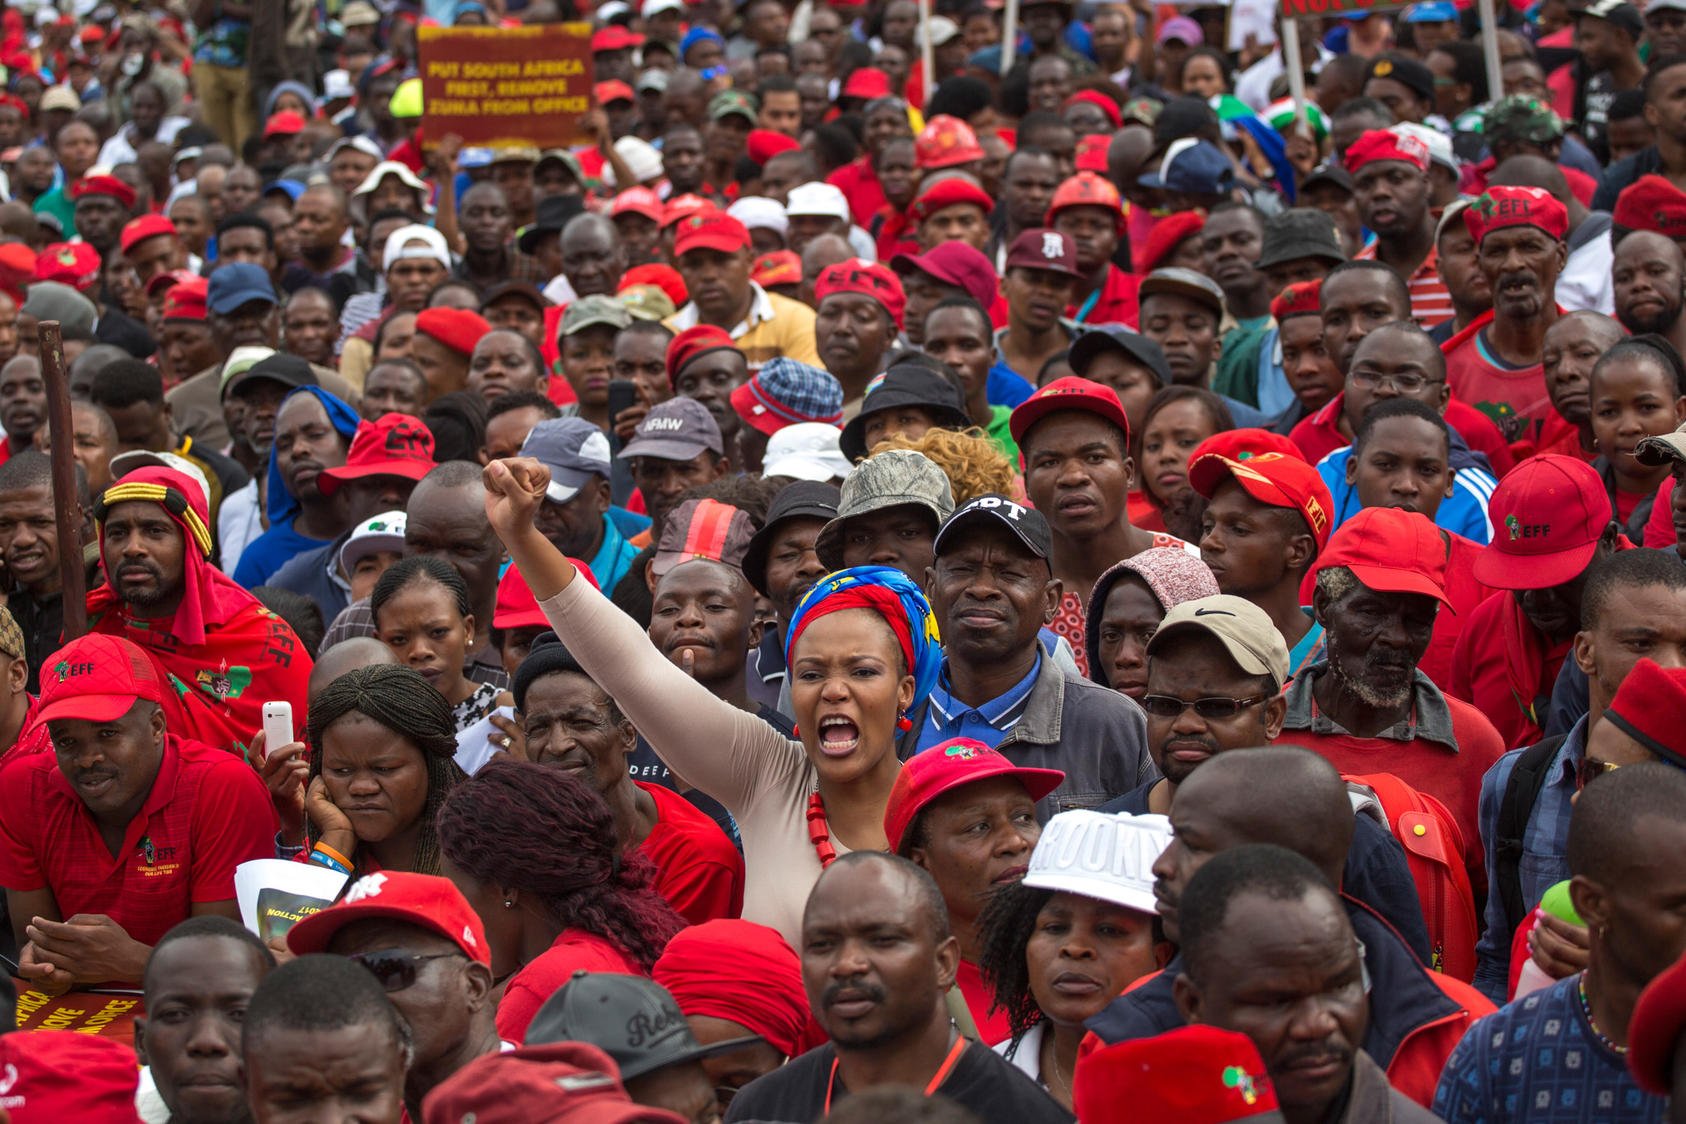 In one of South Africa's largest protests in years, tens of thousands rallied against Zuma, spurred by the firing of a popular finance minister who was held as a bulwark against corruption and cronyism, April 12, 2017. Photo Courtesy of NYT/Joao Silva